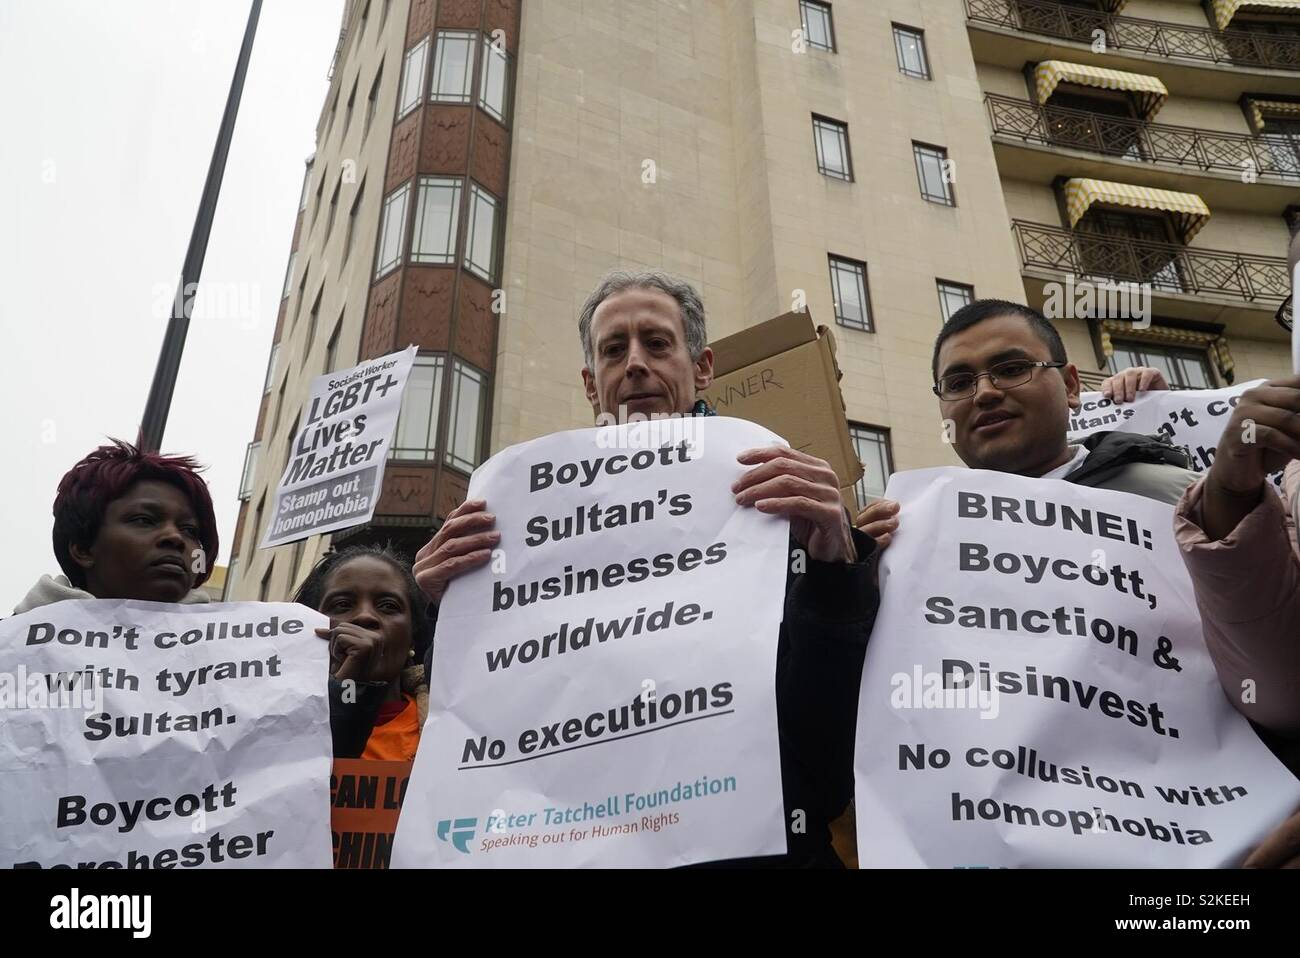 Peter Tatchell leads the protest outside the Dorchester Hotel London condemning recently introduced Brunei laws . - Stock Image